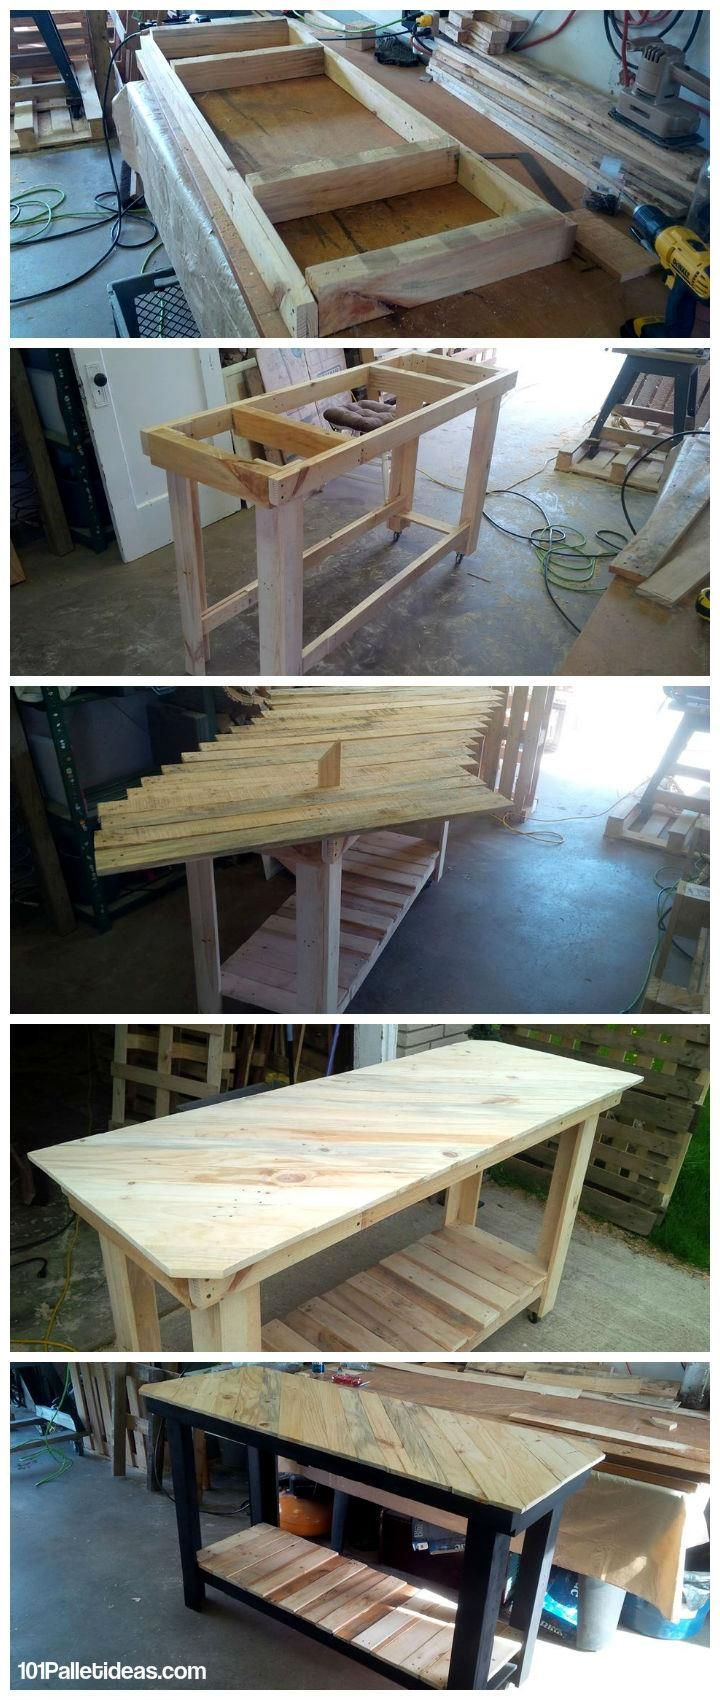 Pallet kitchen island diy - How To Build Your Own Pallet Kitchen Island So Here Pallet Is Unique Solution